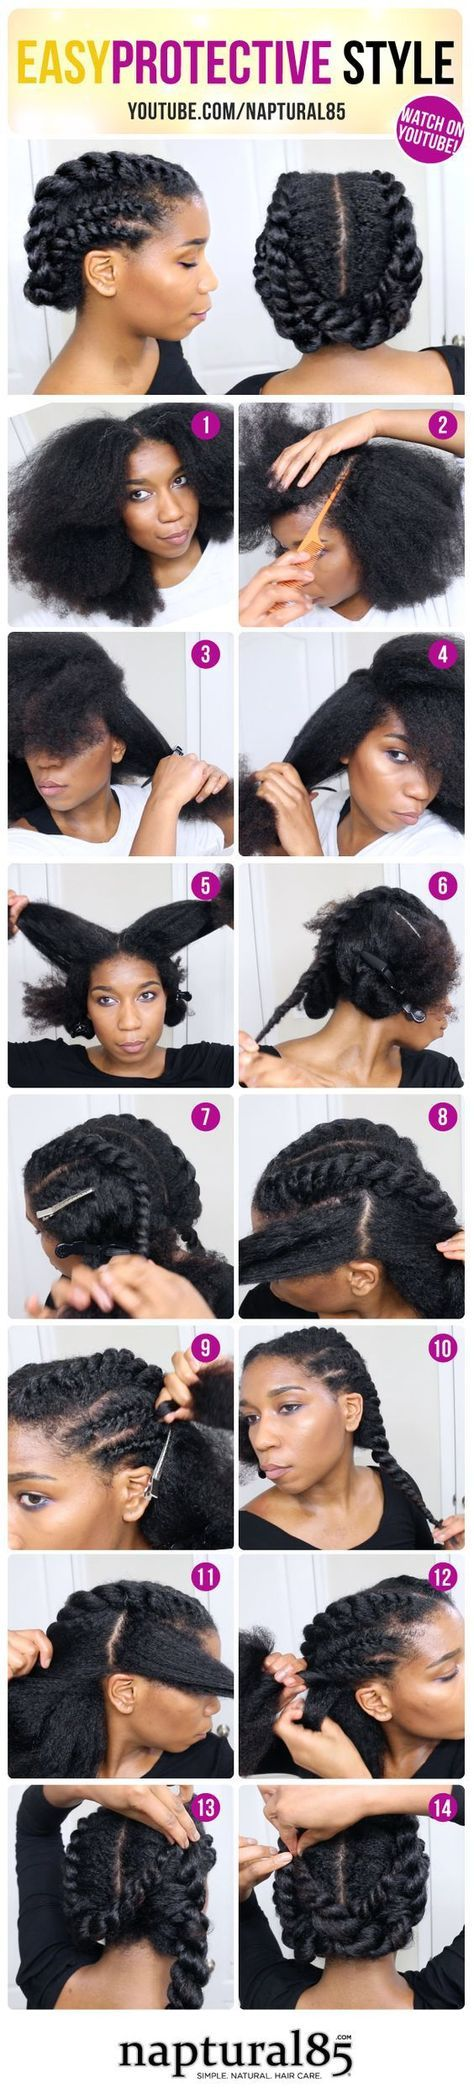 Easy protective natural hair style